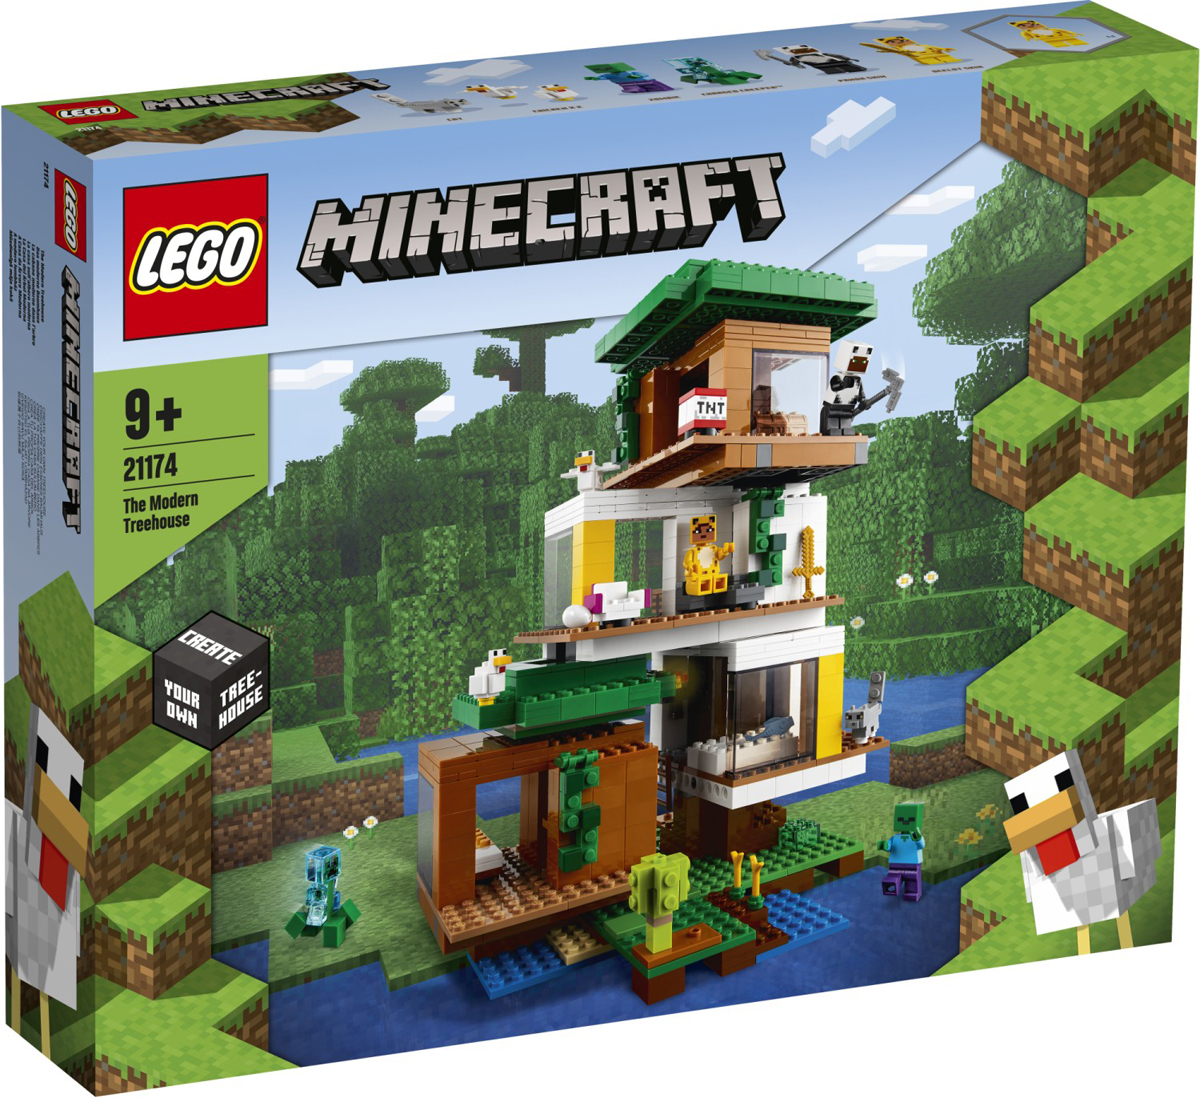 September Double Points for LEGO VIPs: LEGO Minecraft The Sky Tower (21173) and The Modern Treehouse (21174)